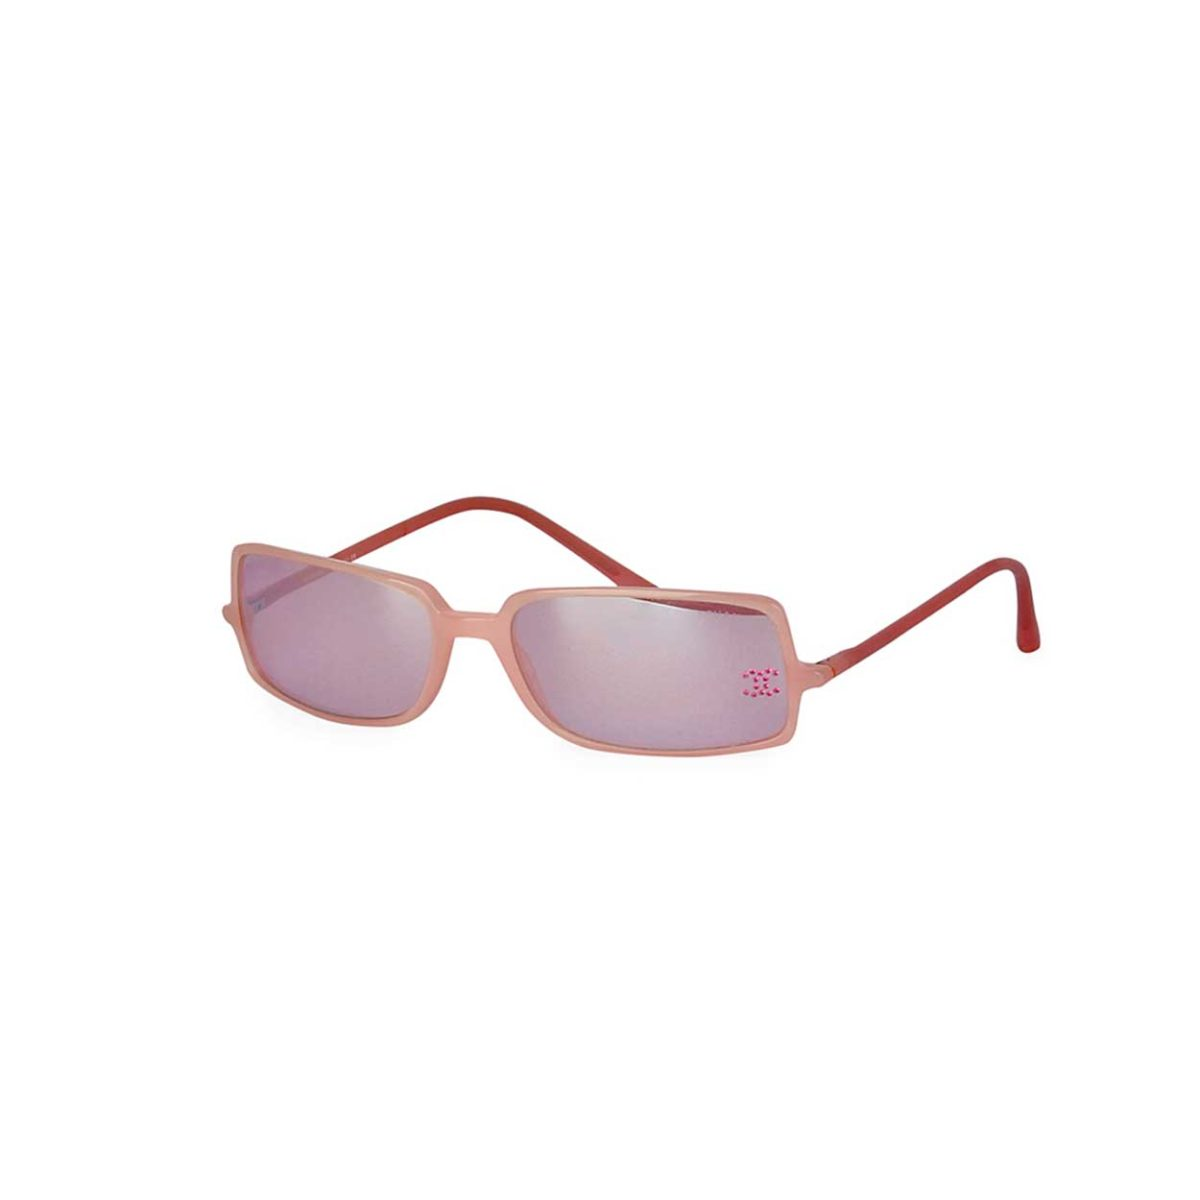 ef00e381e21 CHANEL Rhinstone CC Logo Mirrored Sunglasses Light Pink 5043